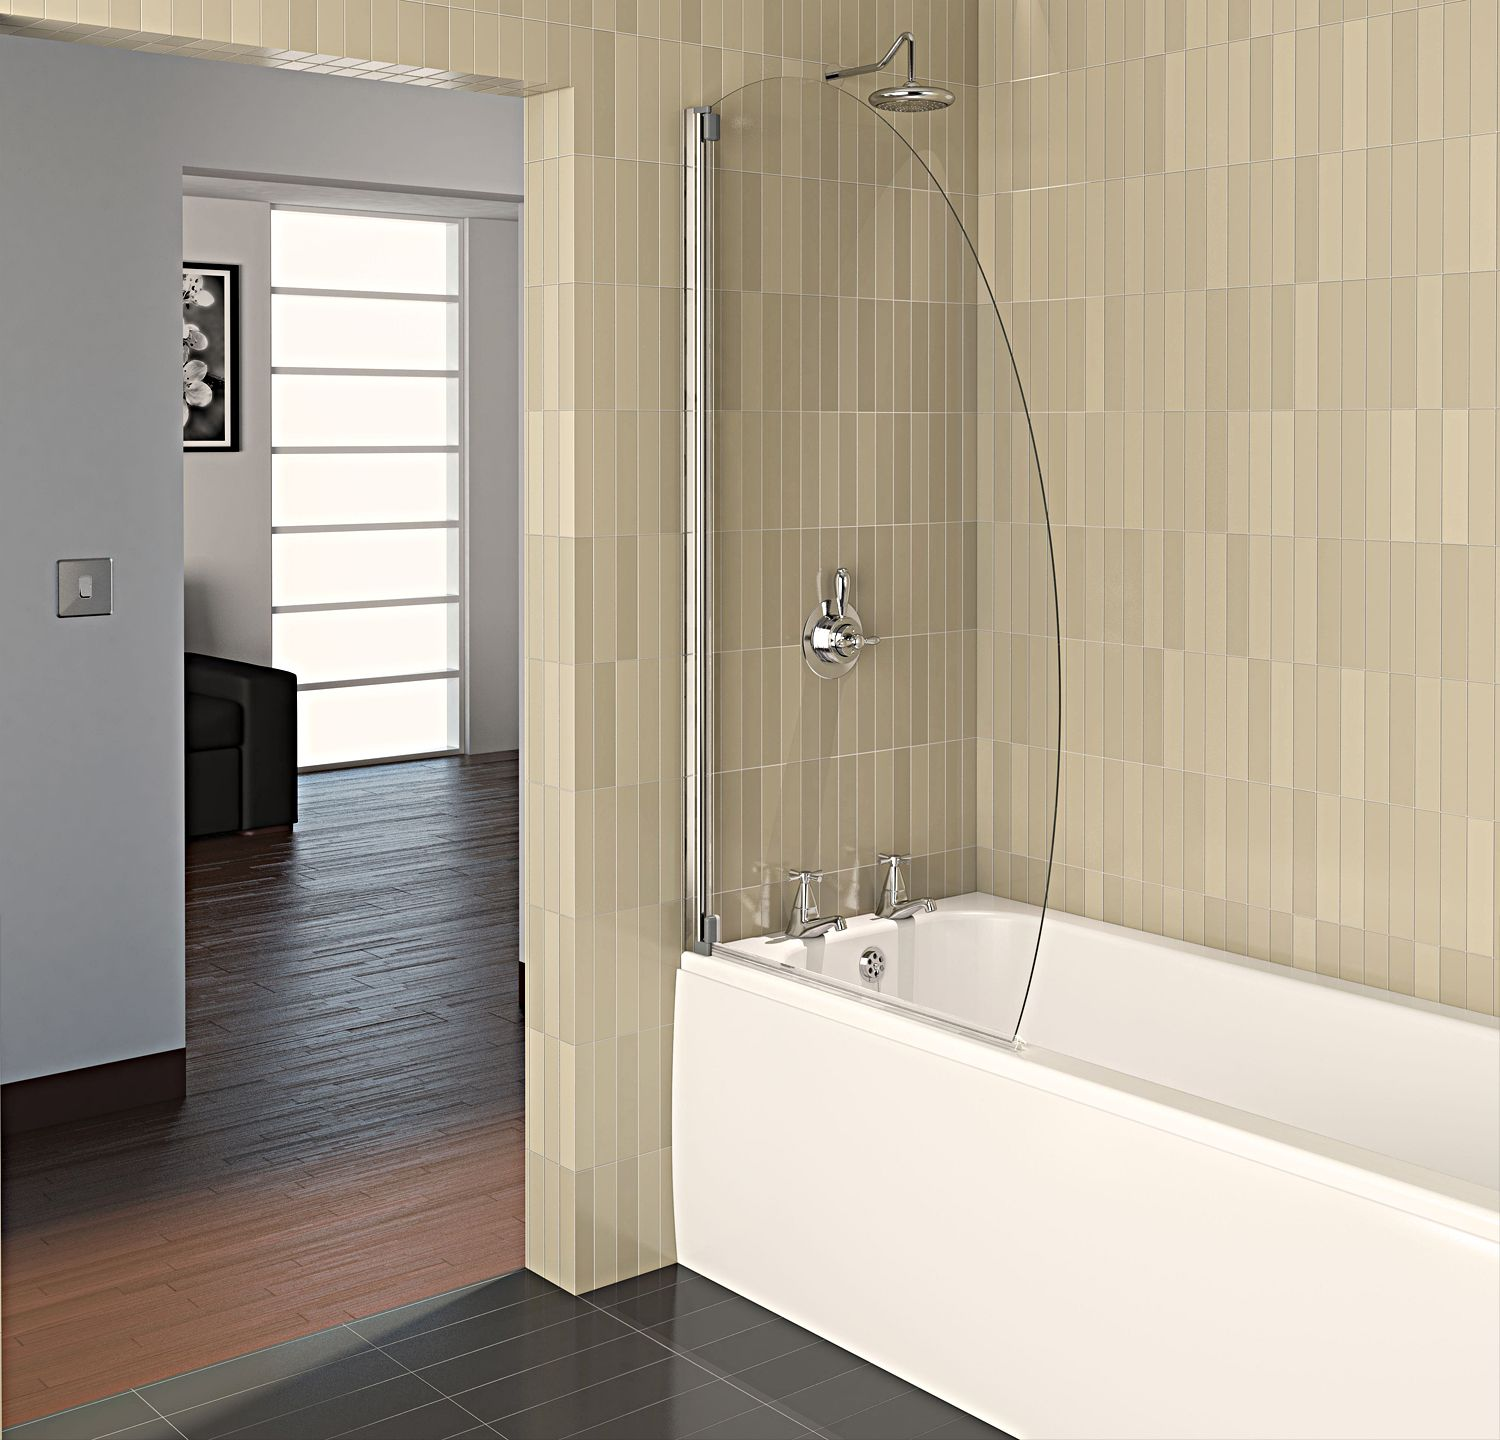 Baño De Ducha Procedimiento:Oval Bathroom Glass Shower Door